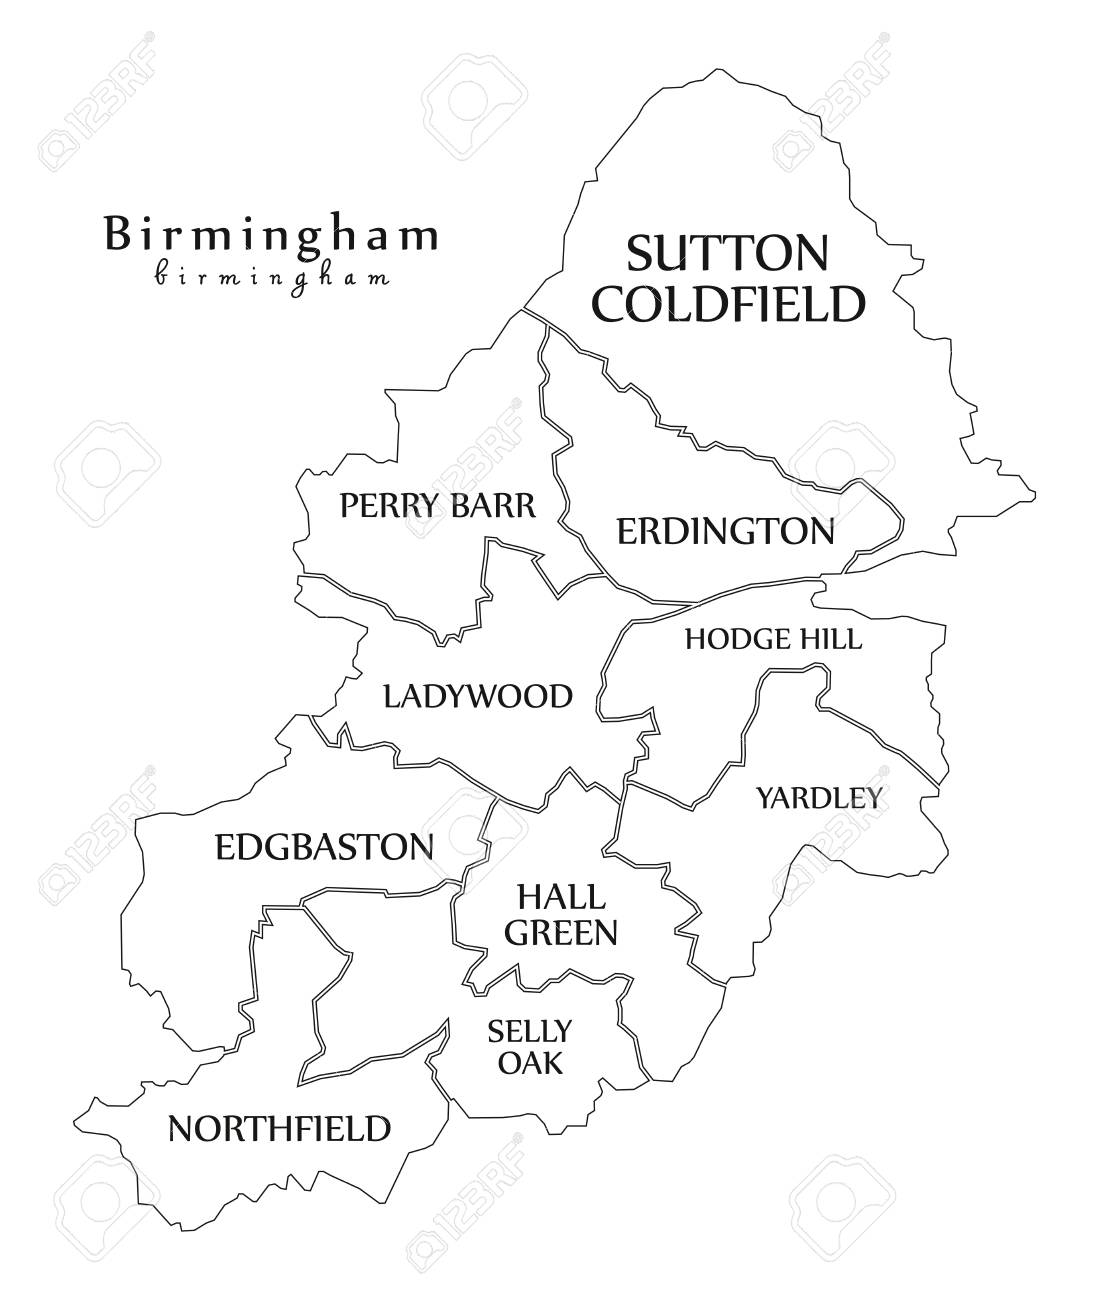 Map Of Birmingham England.Modern City Map Of Birmingham City Of England With Boroughs And